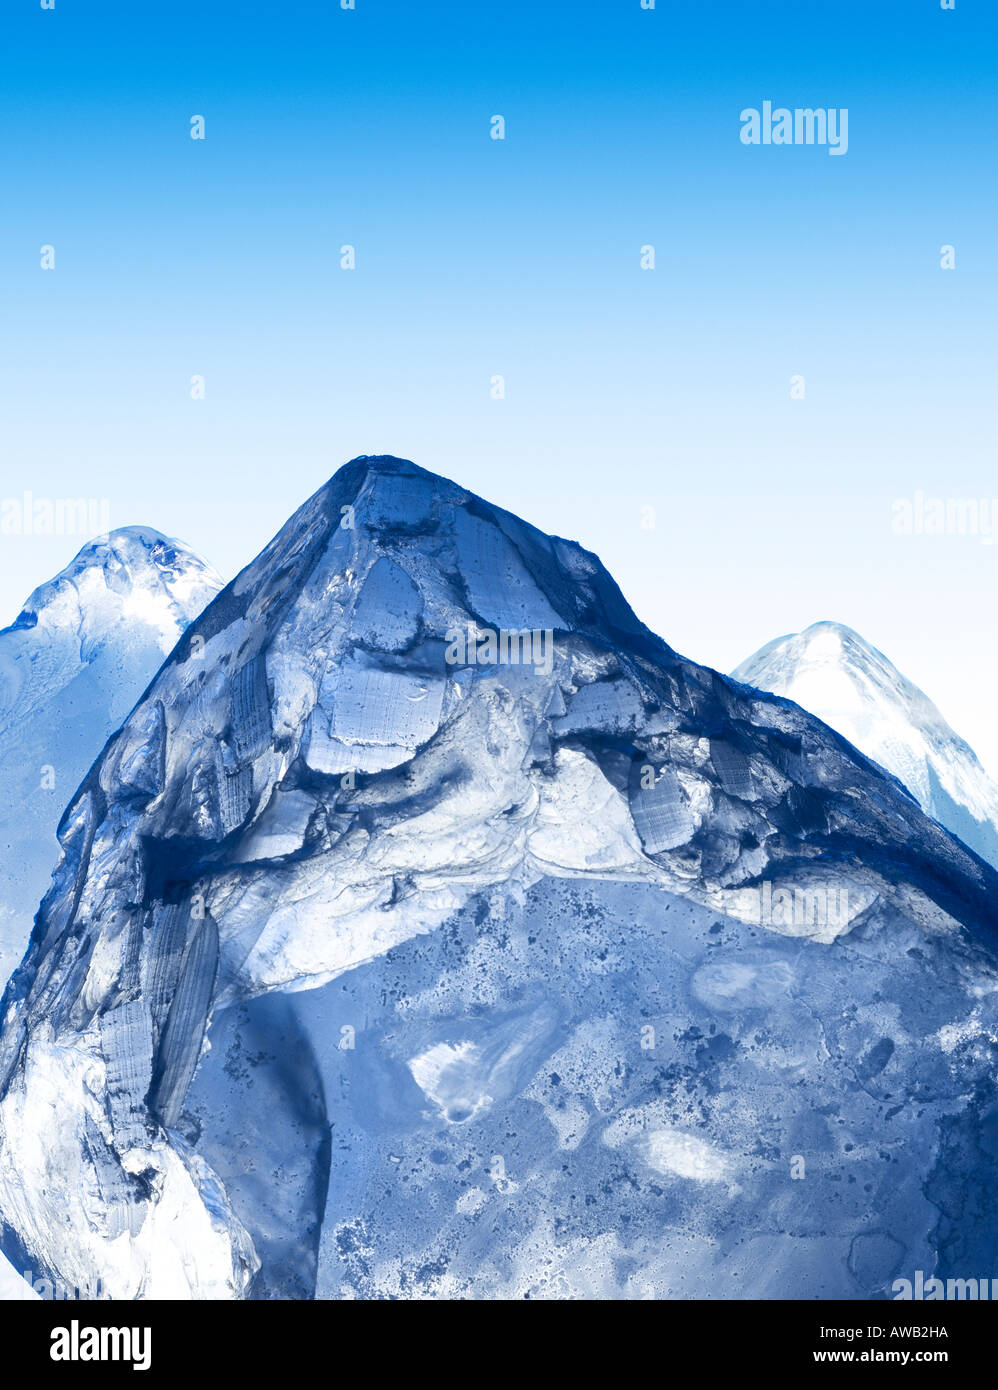 A group of ice cubes cleverly positioned to look like the peaks of some mountains. - Stock Image